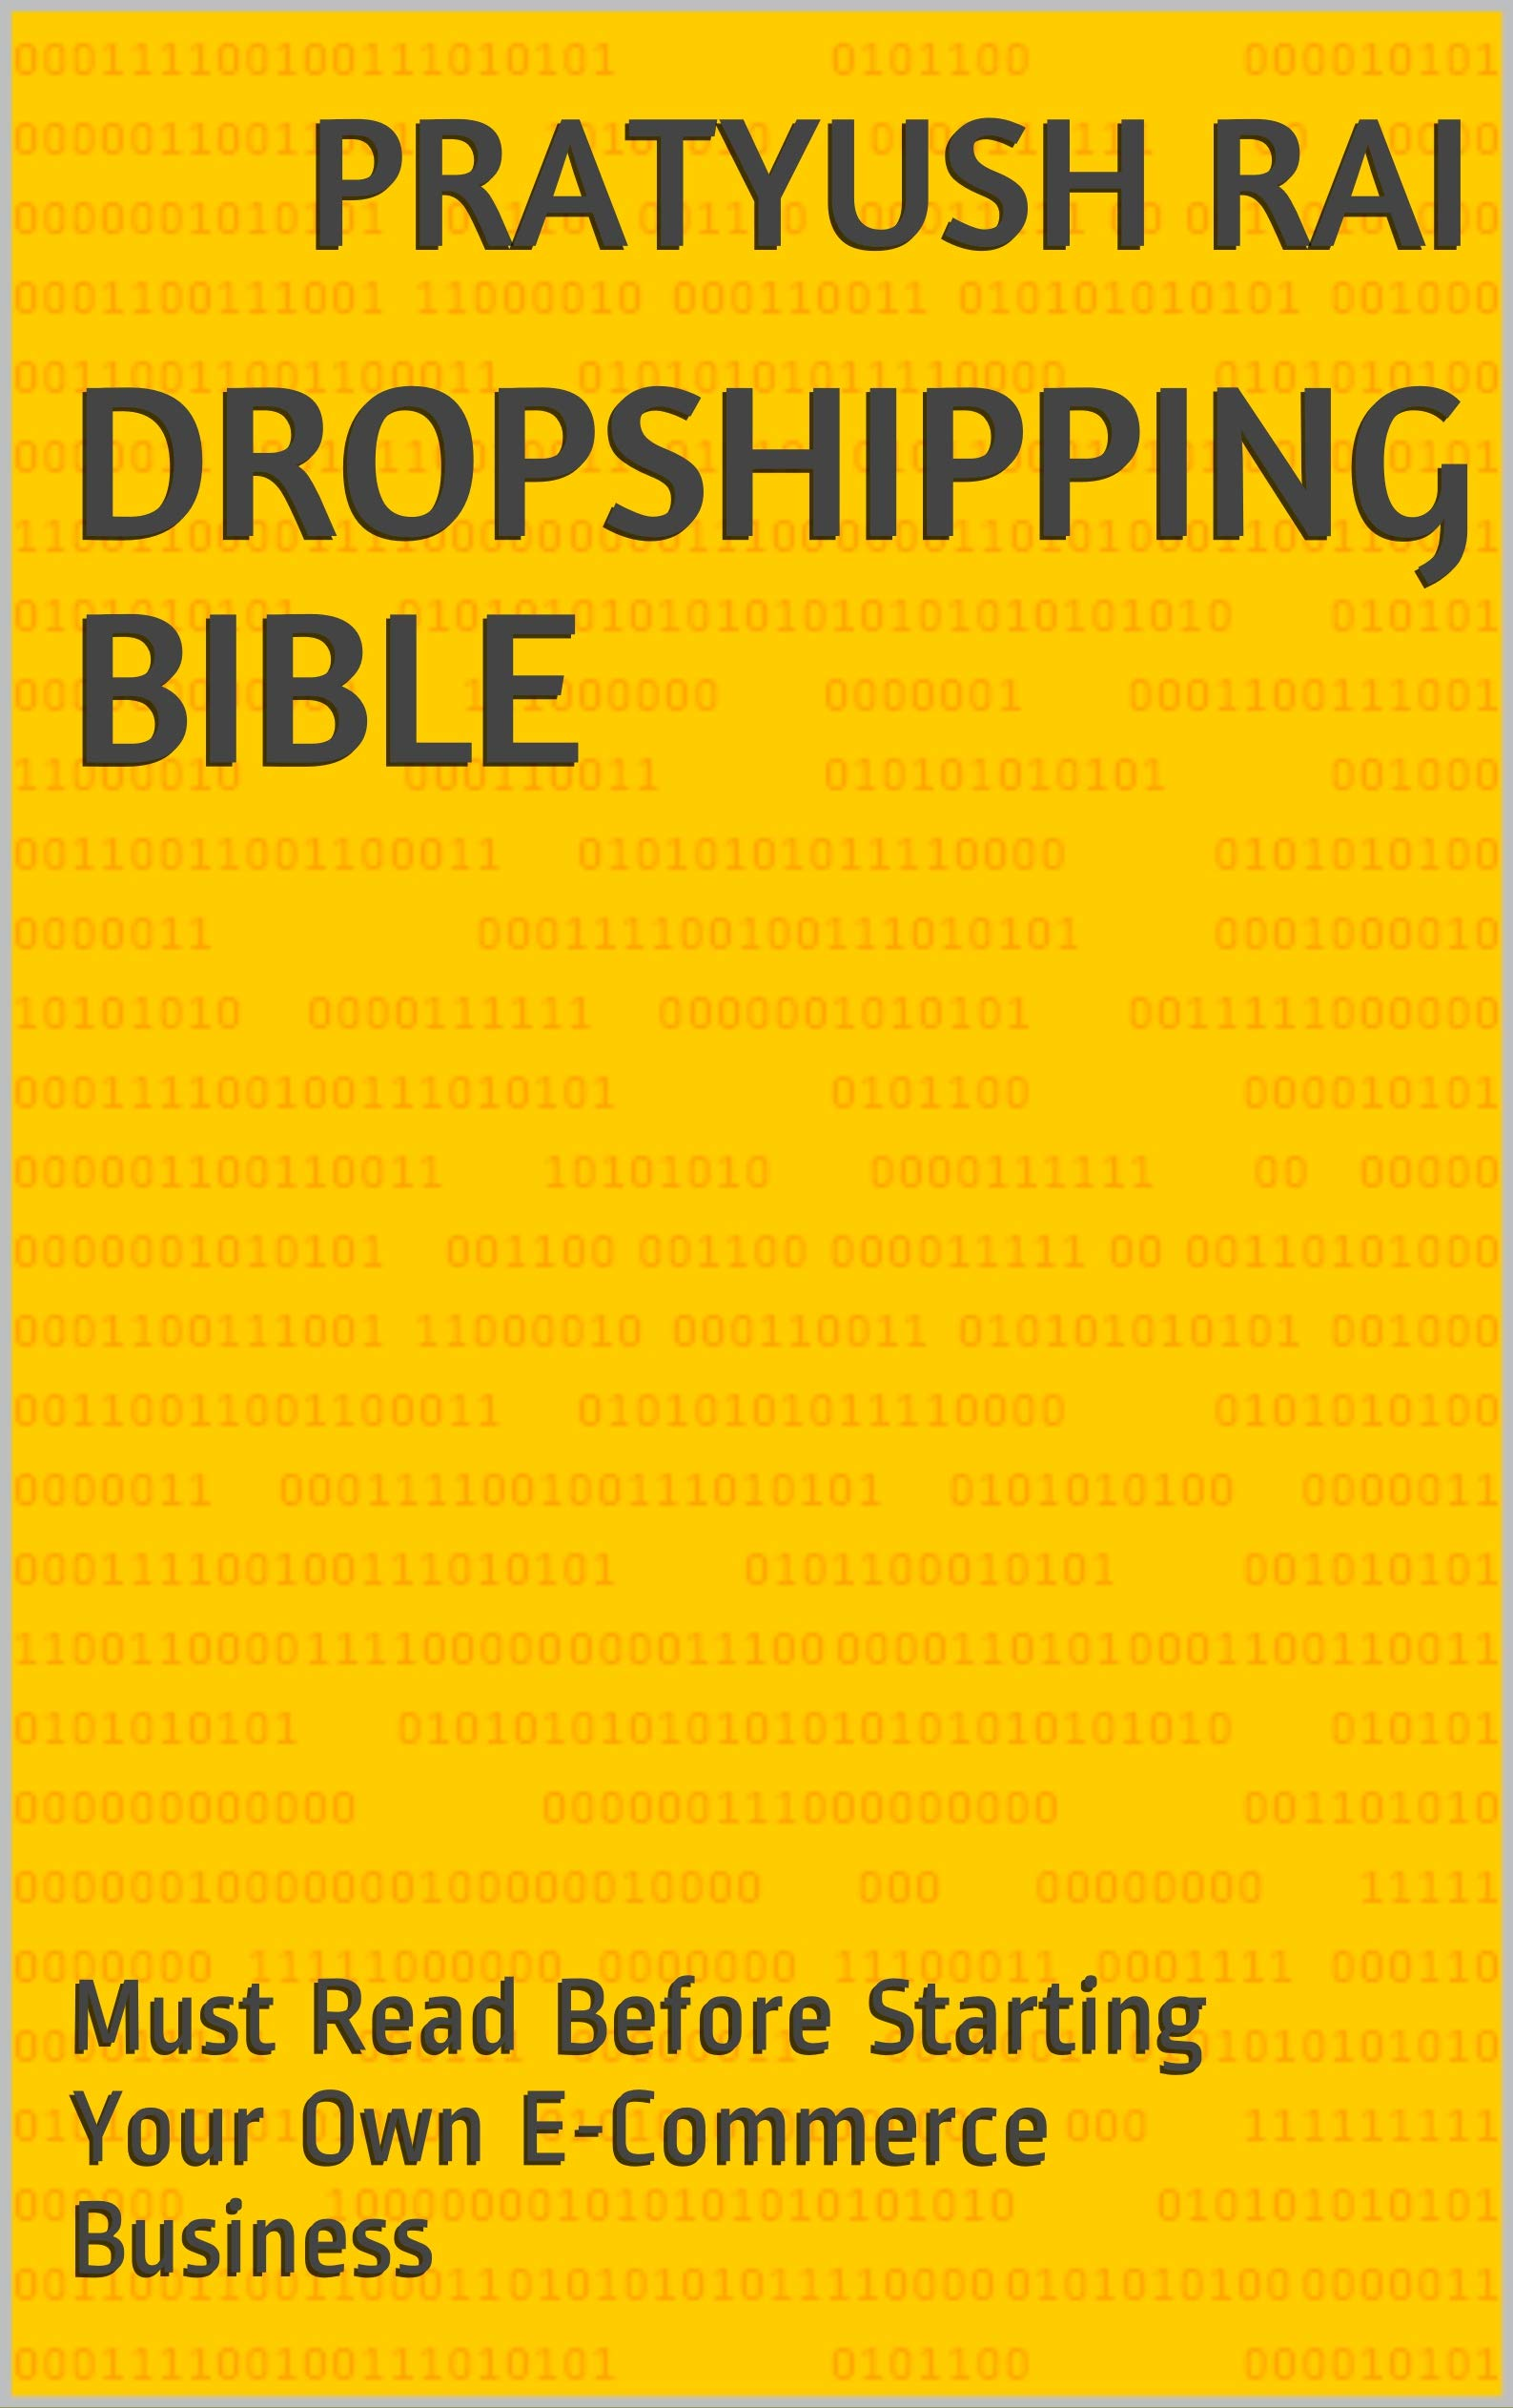 DROPSHIPPING BIBLE: Must Read Before Starting Your Own E-Commerce Business